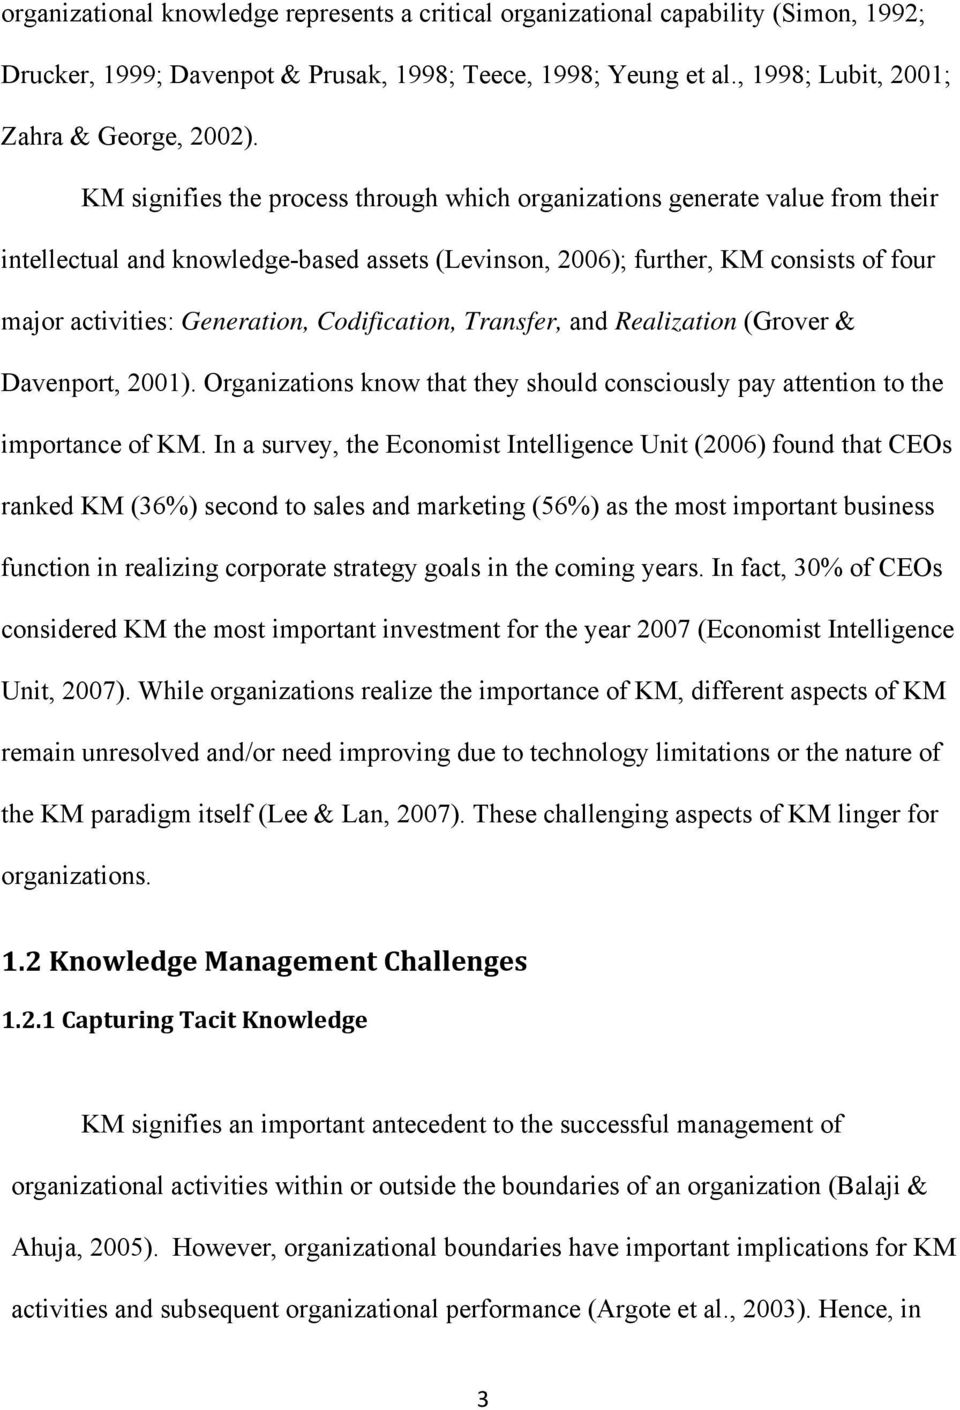 Codification, Transfer, and Realization (Grover & Davenport, 2001). Organizations know that they should consciously pay attention to the importance of KM.